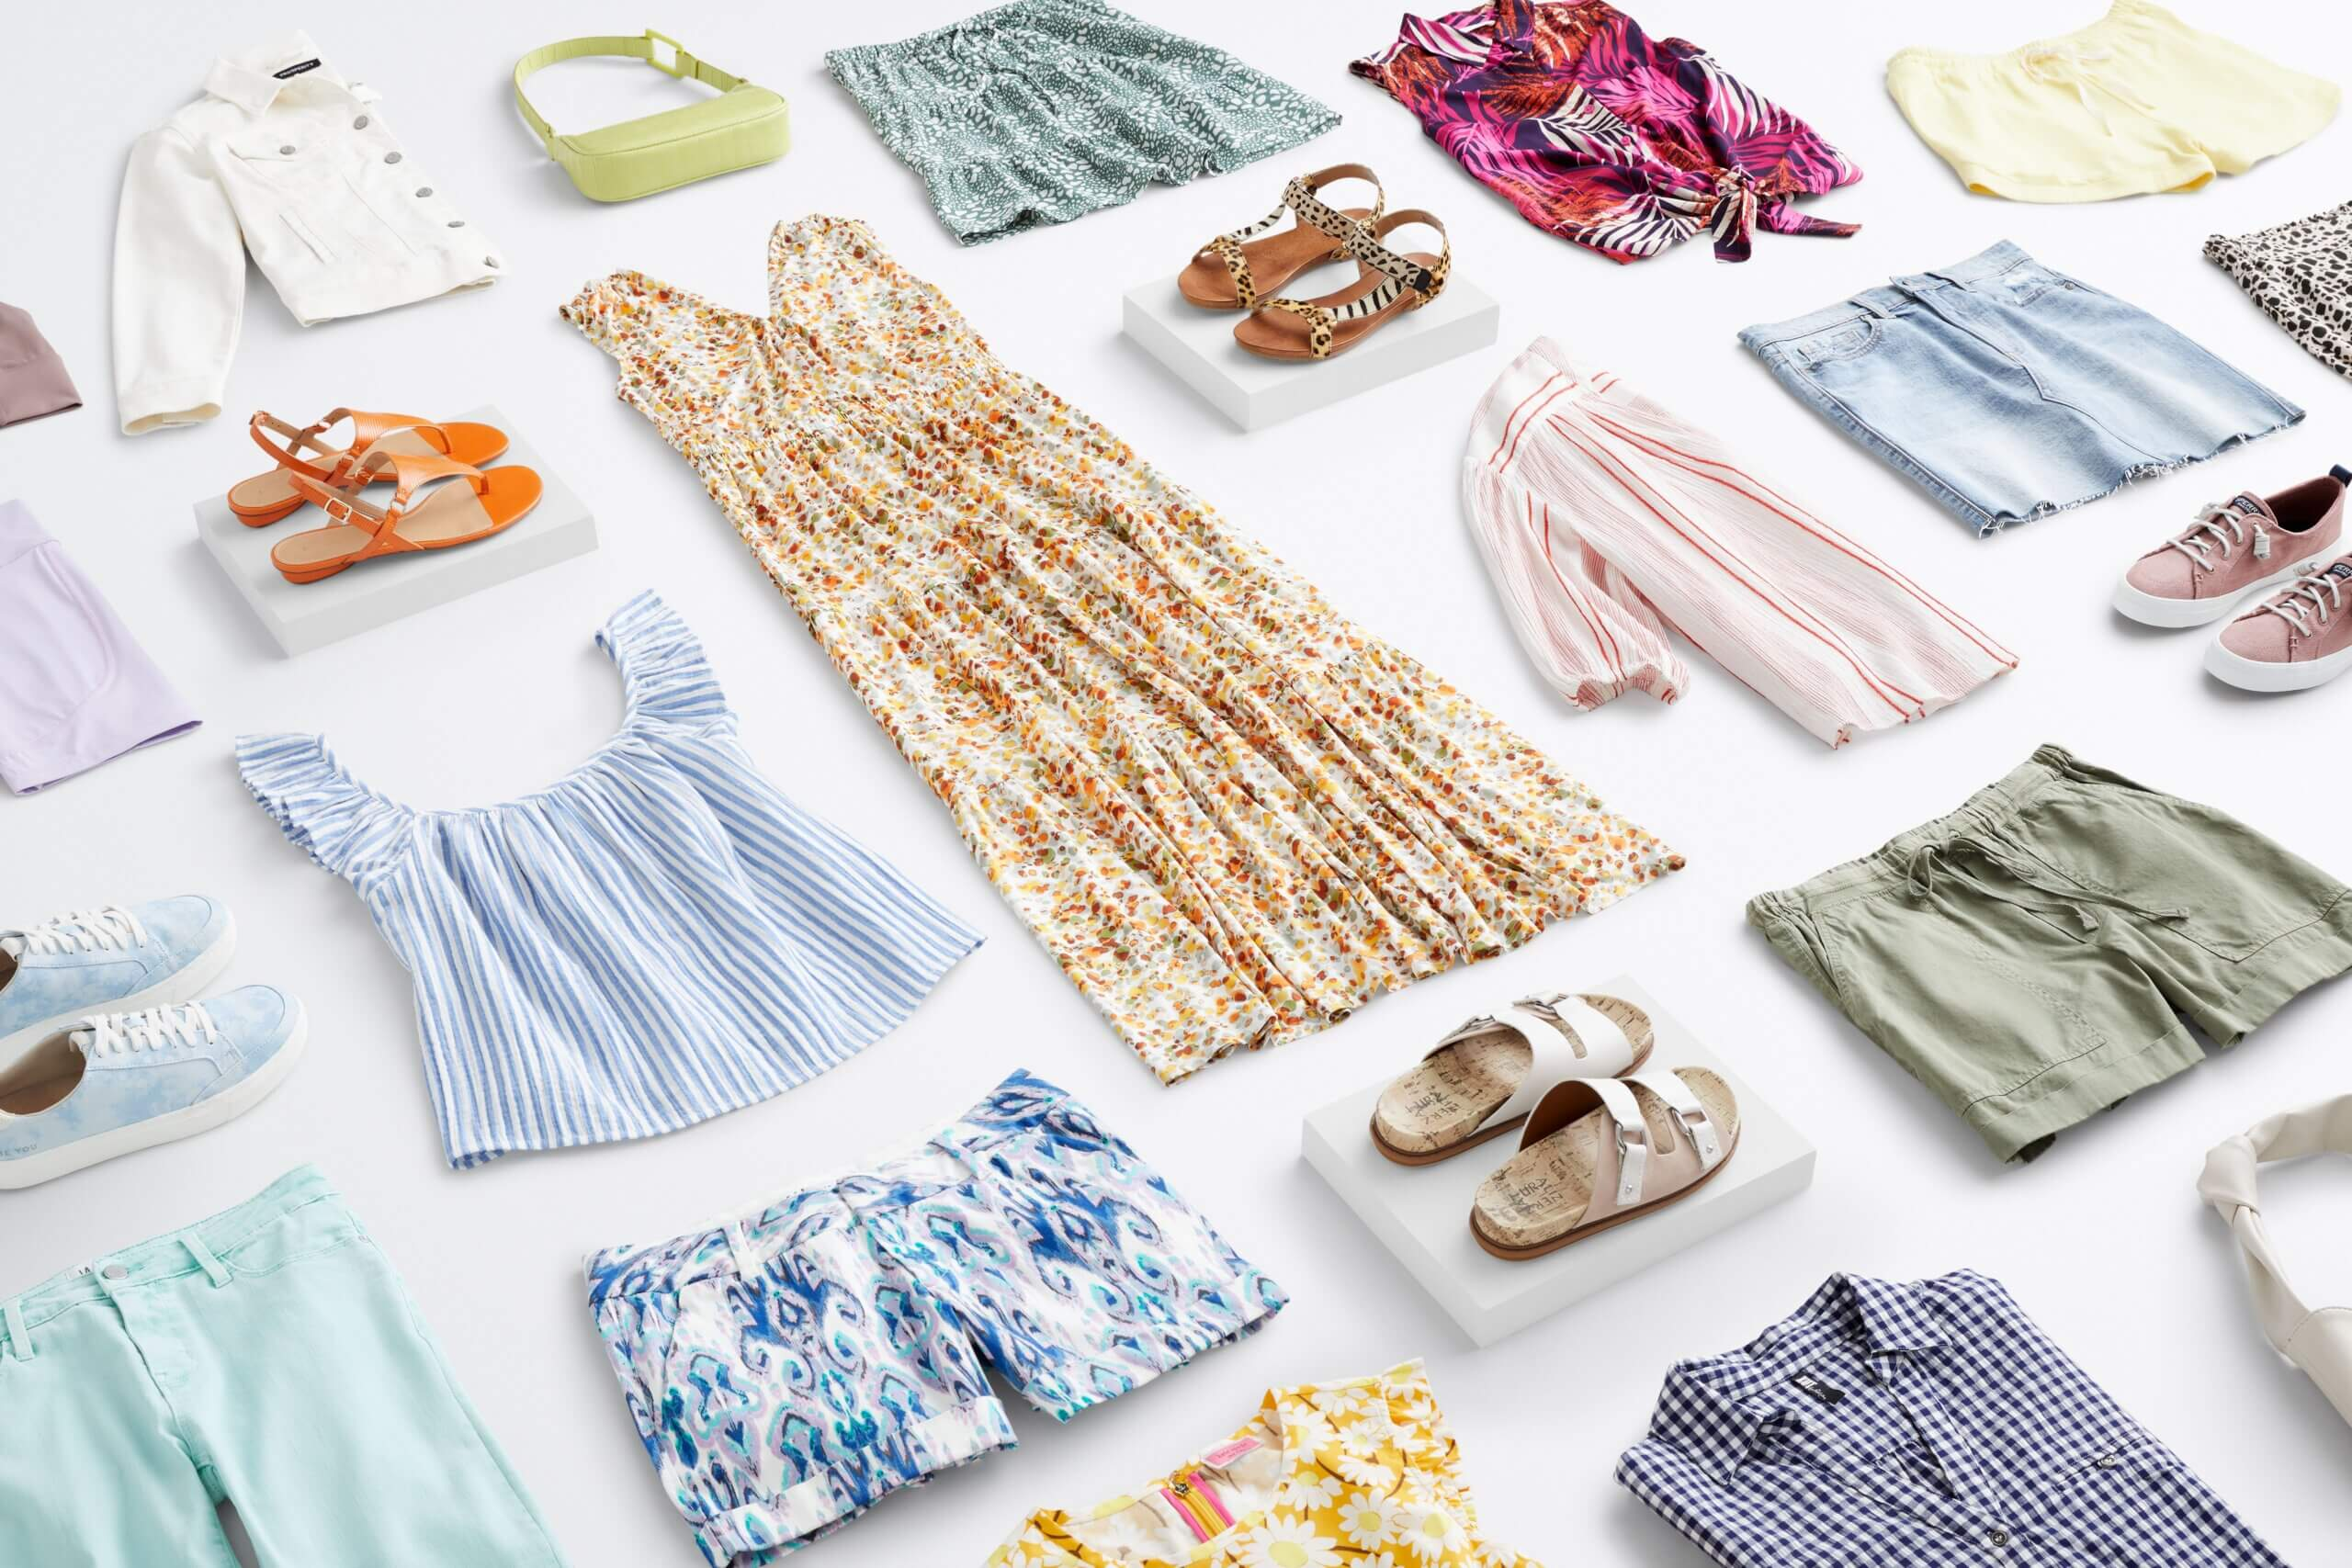 Stitch Fix women's resort wear in a variety of colors, prints and silhouettes.